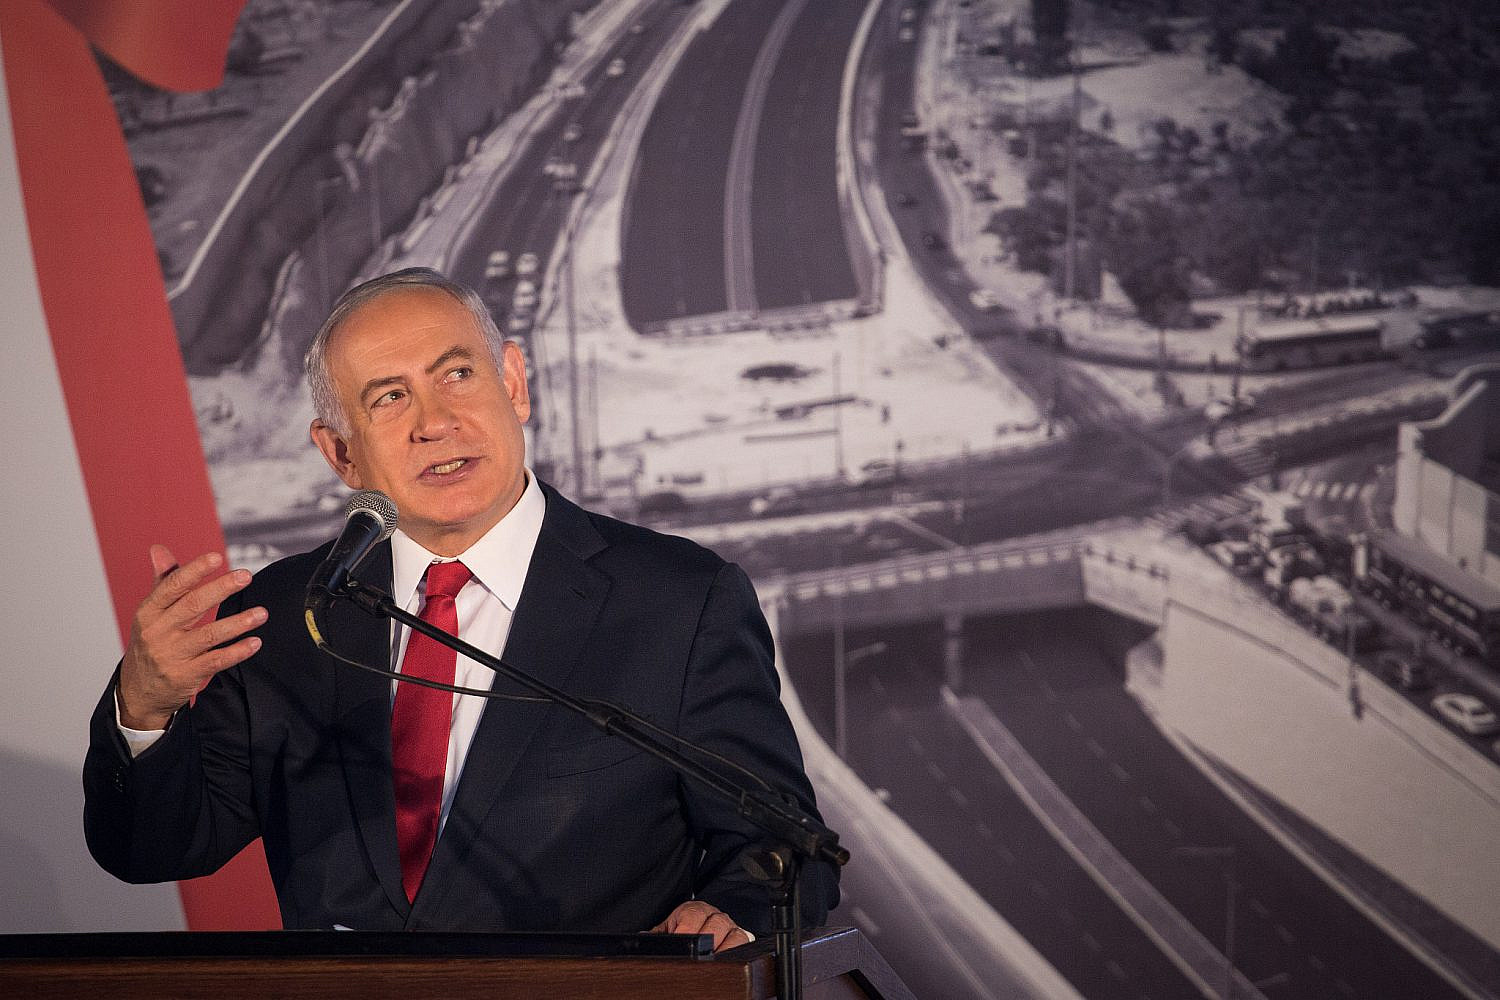 Prime Minister Benjamin Netanyahu speaks during a ceremony opening the new part of the Begin road, the Rosmerine Interchange, connecting Begin to Route 60, in Jerusalem, Sept. 7, 2017. (Hadas Parush/Flash90)